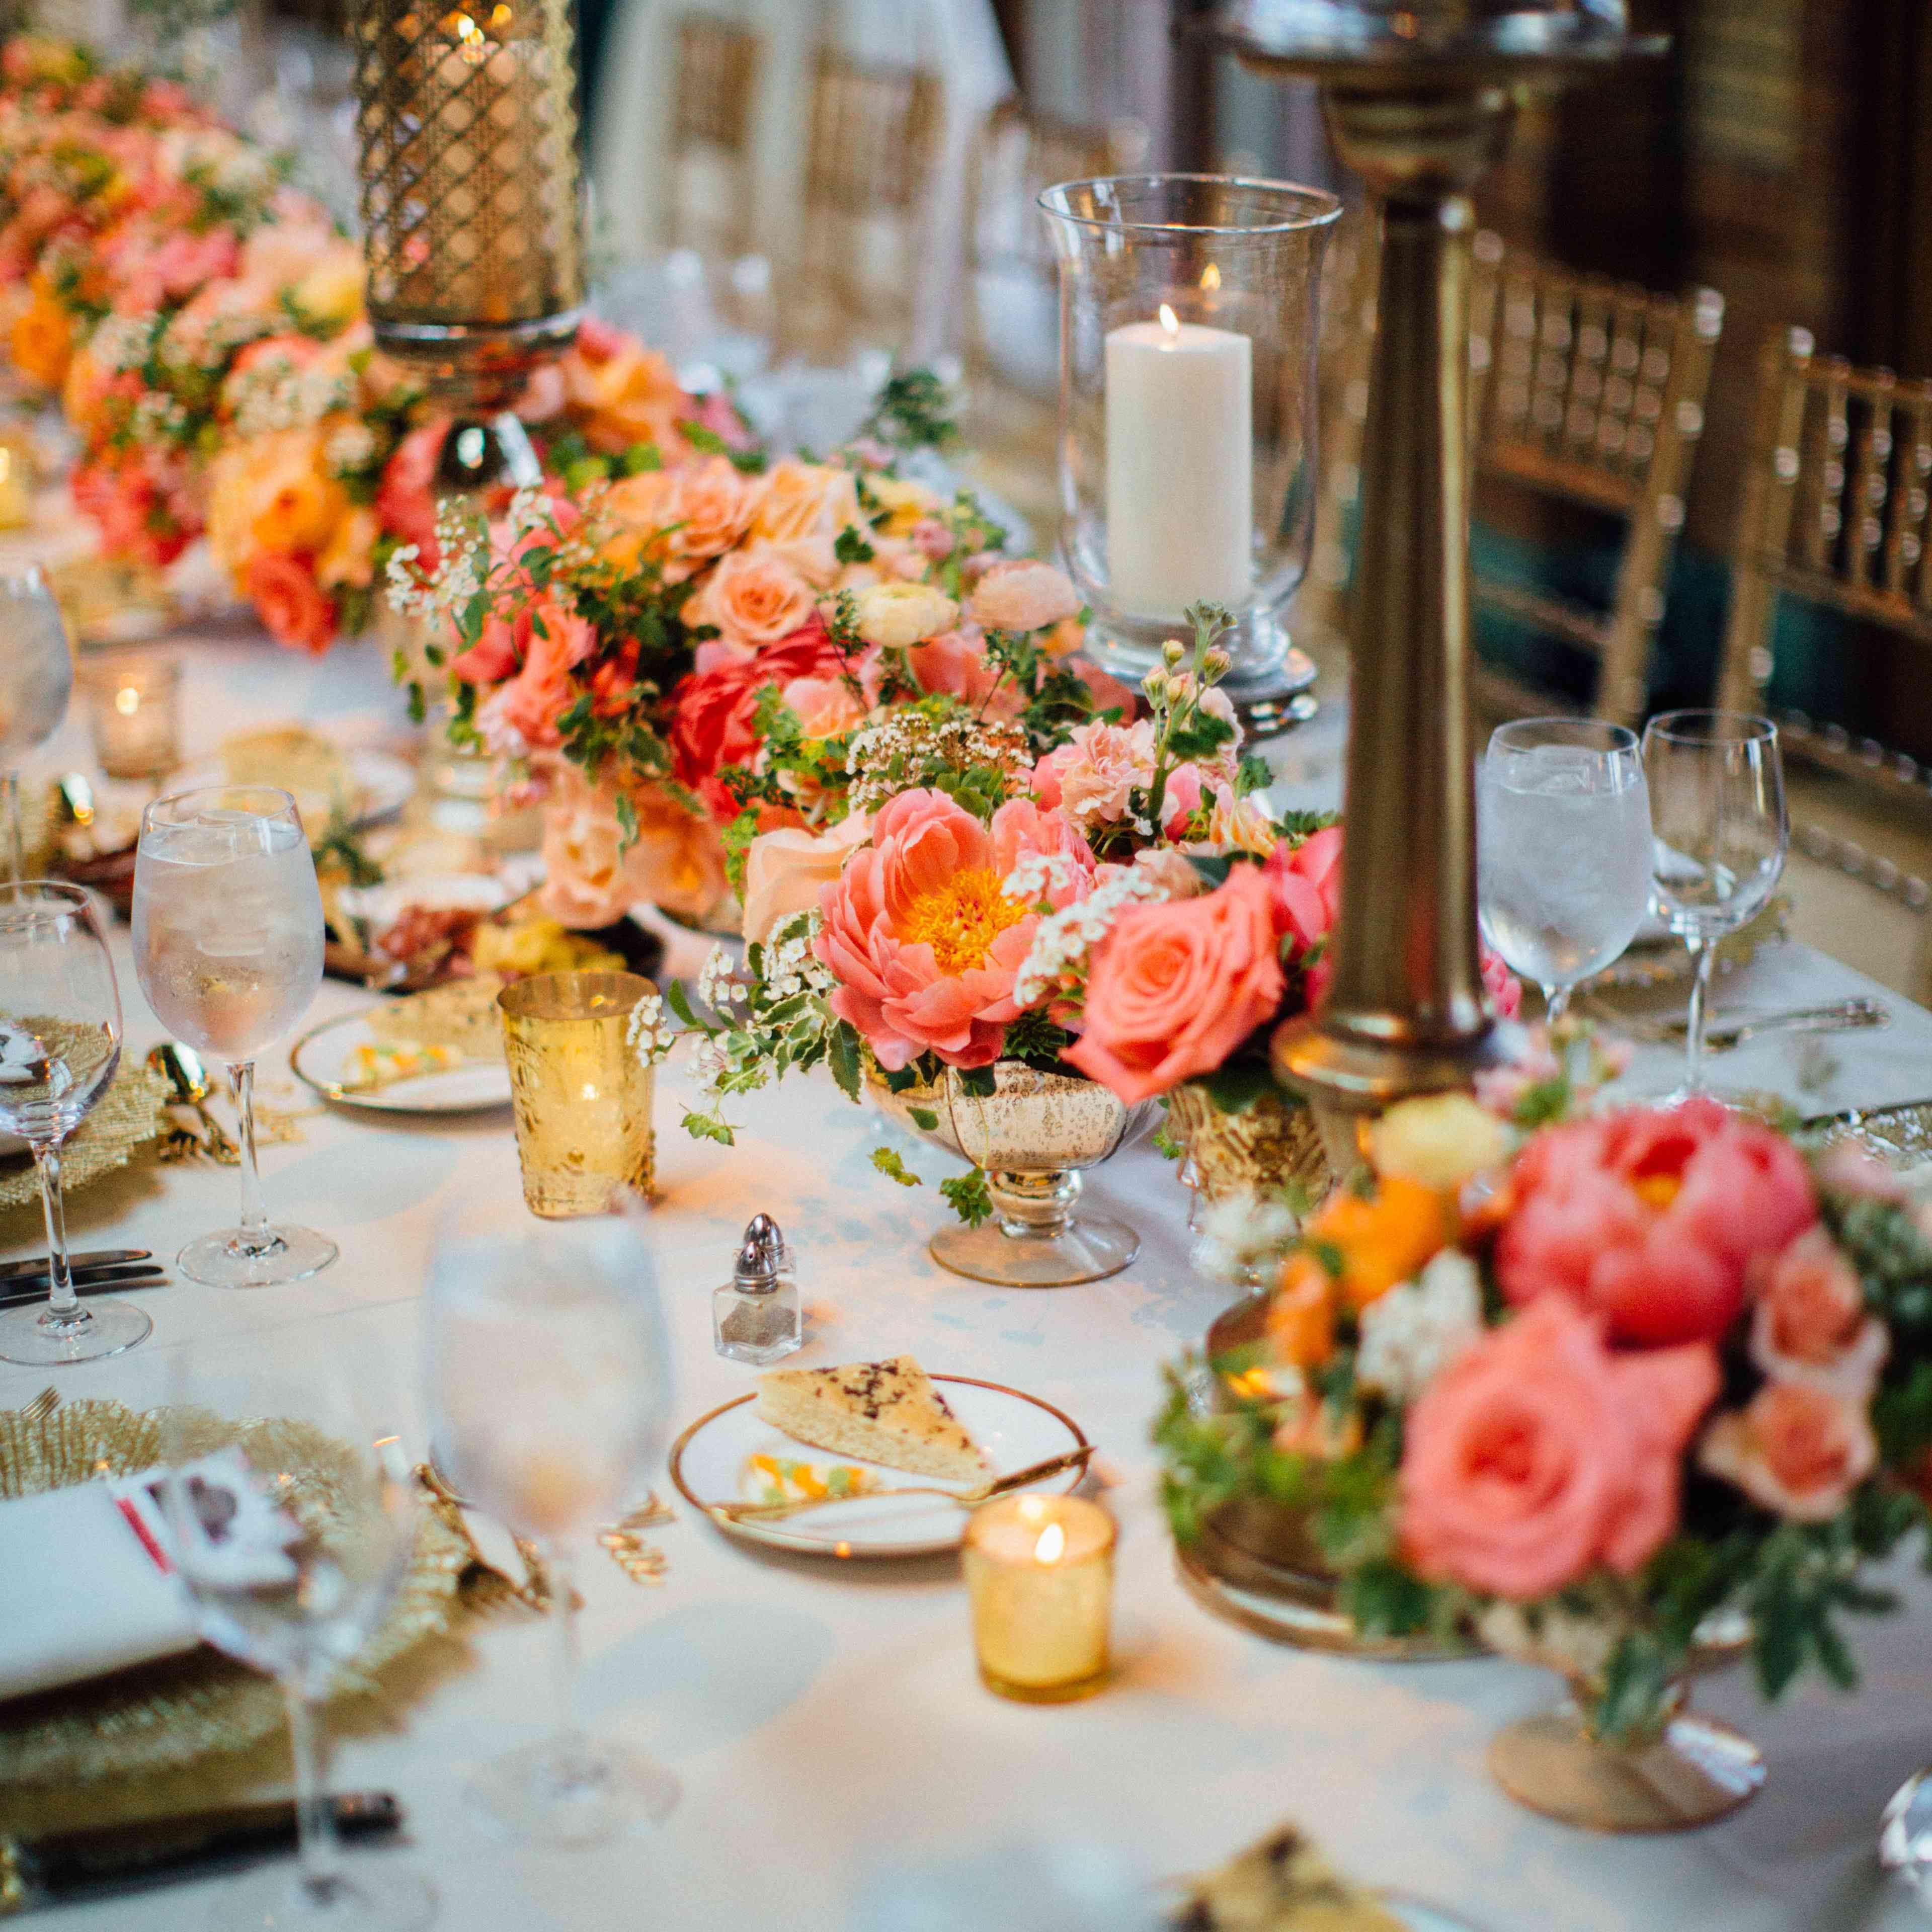 <p>Pink and Peach Centerpieces</p><br><br>